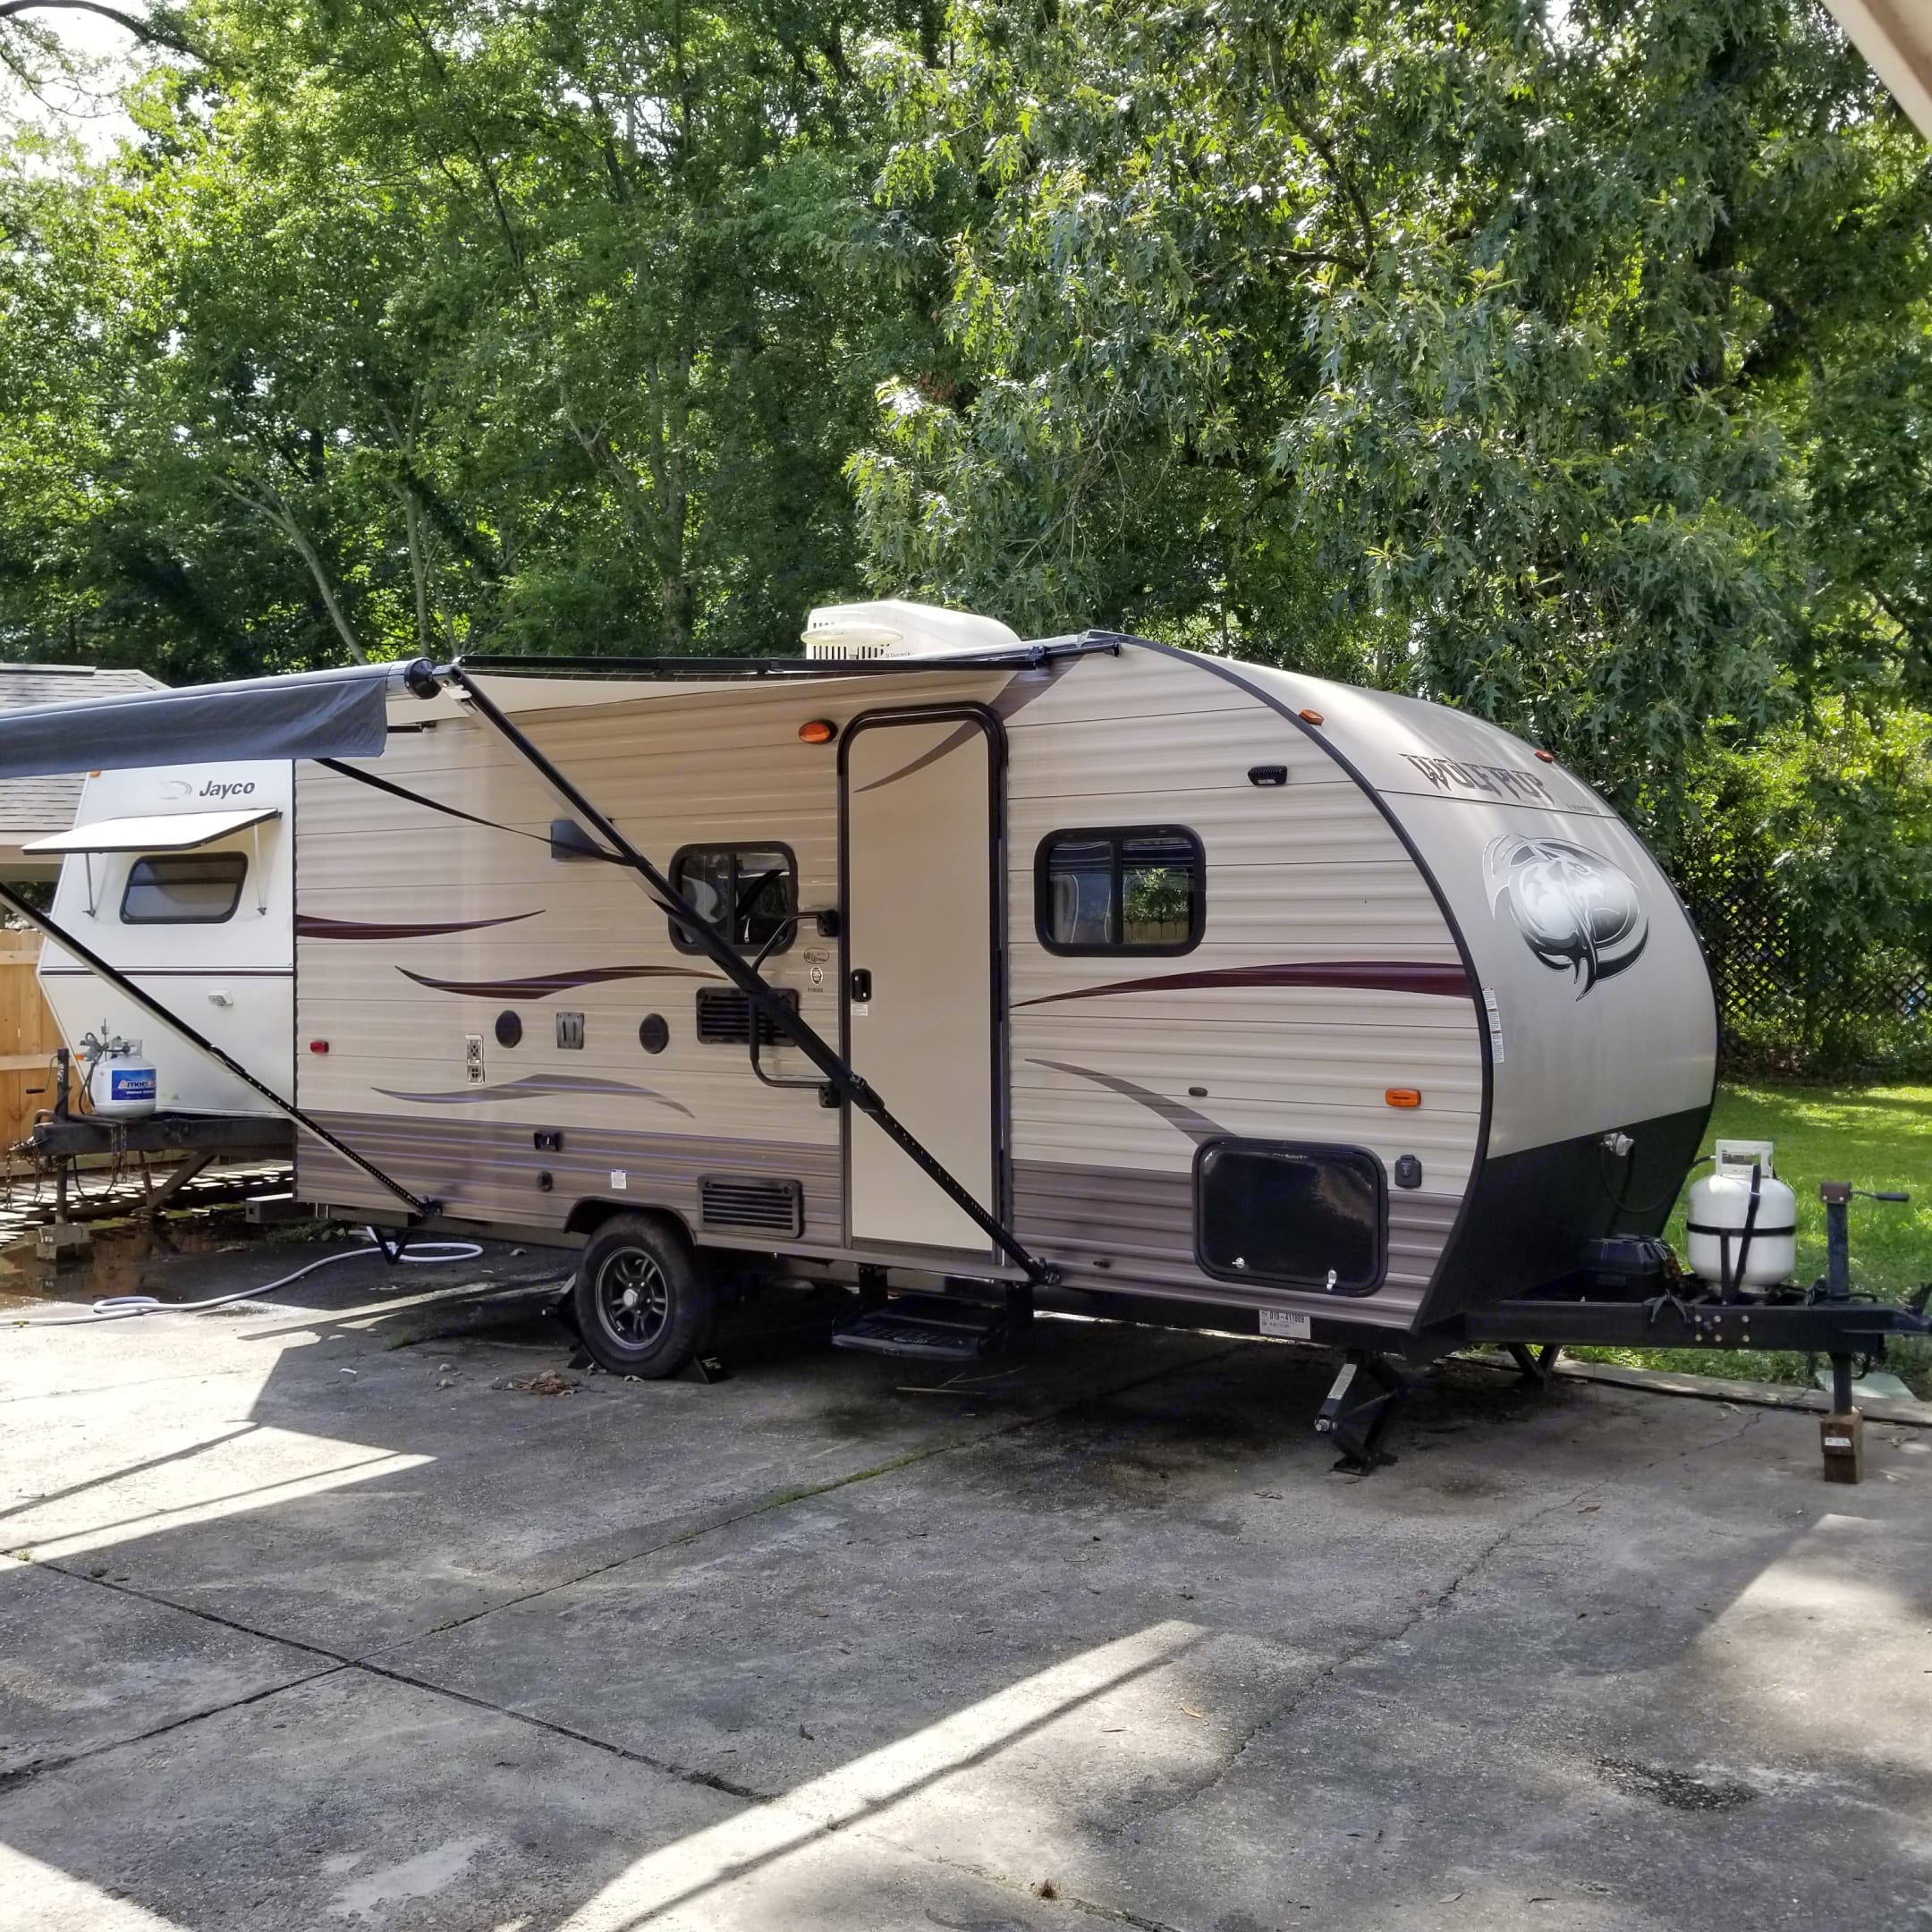 Full awning for rain and sun cover. . Forest River Cherokee Wolf Pup 16BHS 2016